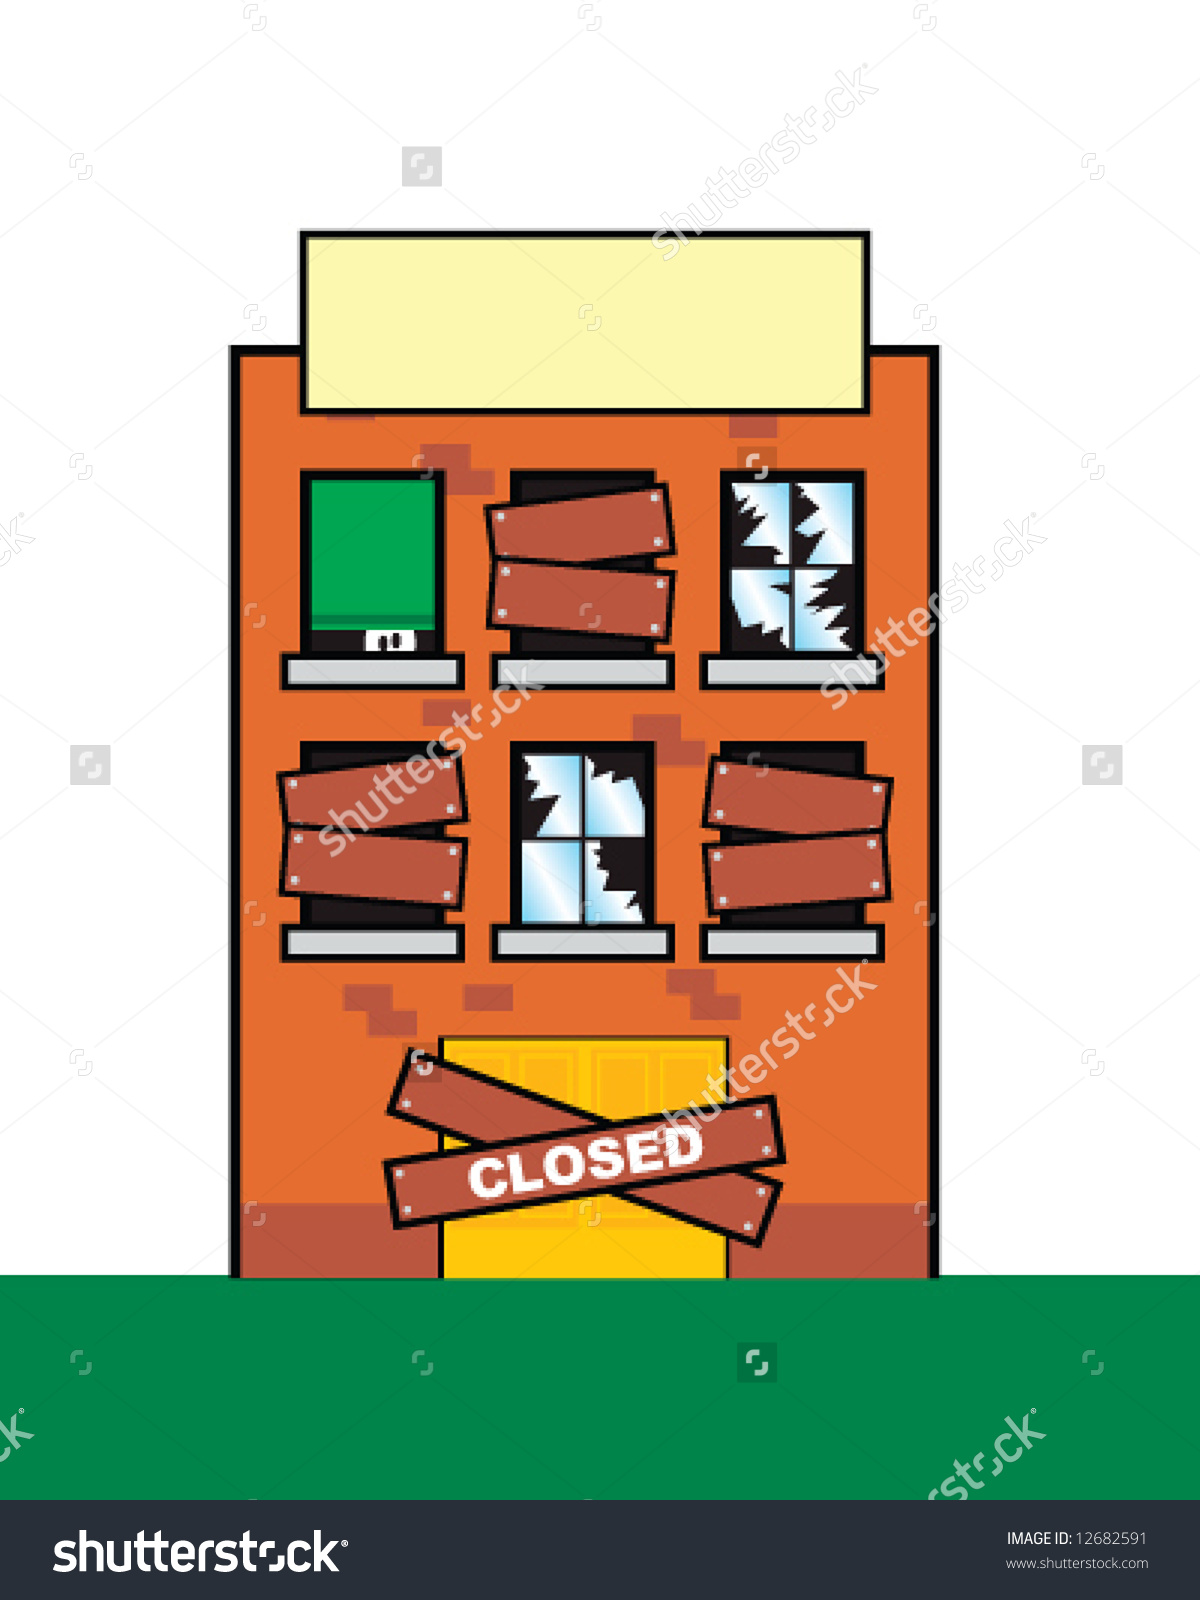 Vector Closed Rundown Building Concept Hard Stock Vector 12682591.